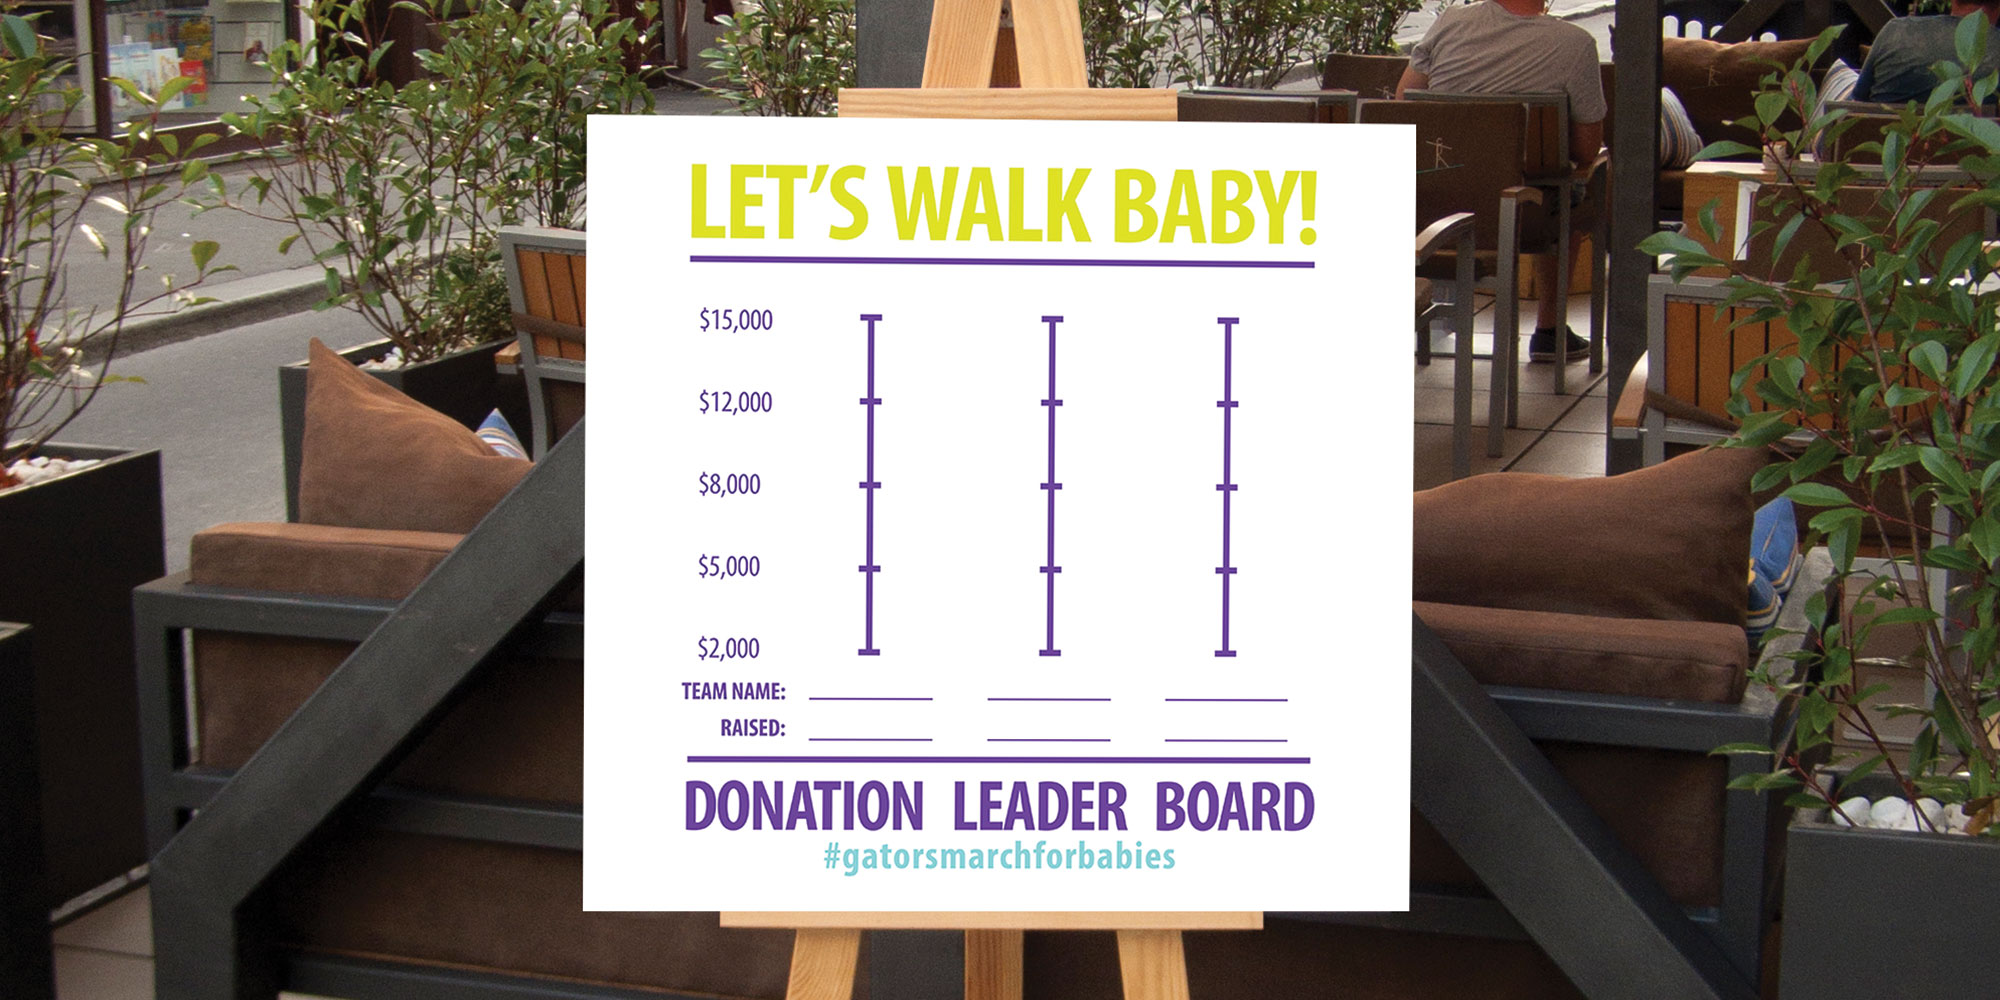 March of Dimes - Let's Walk Baby Campaign - Print